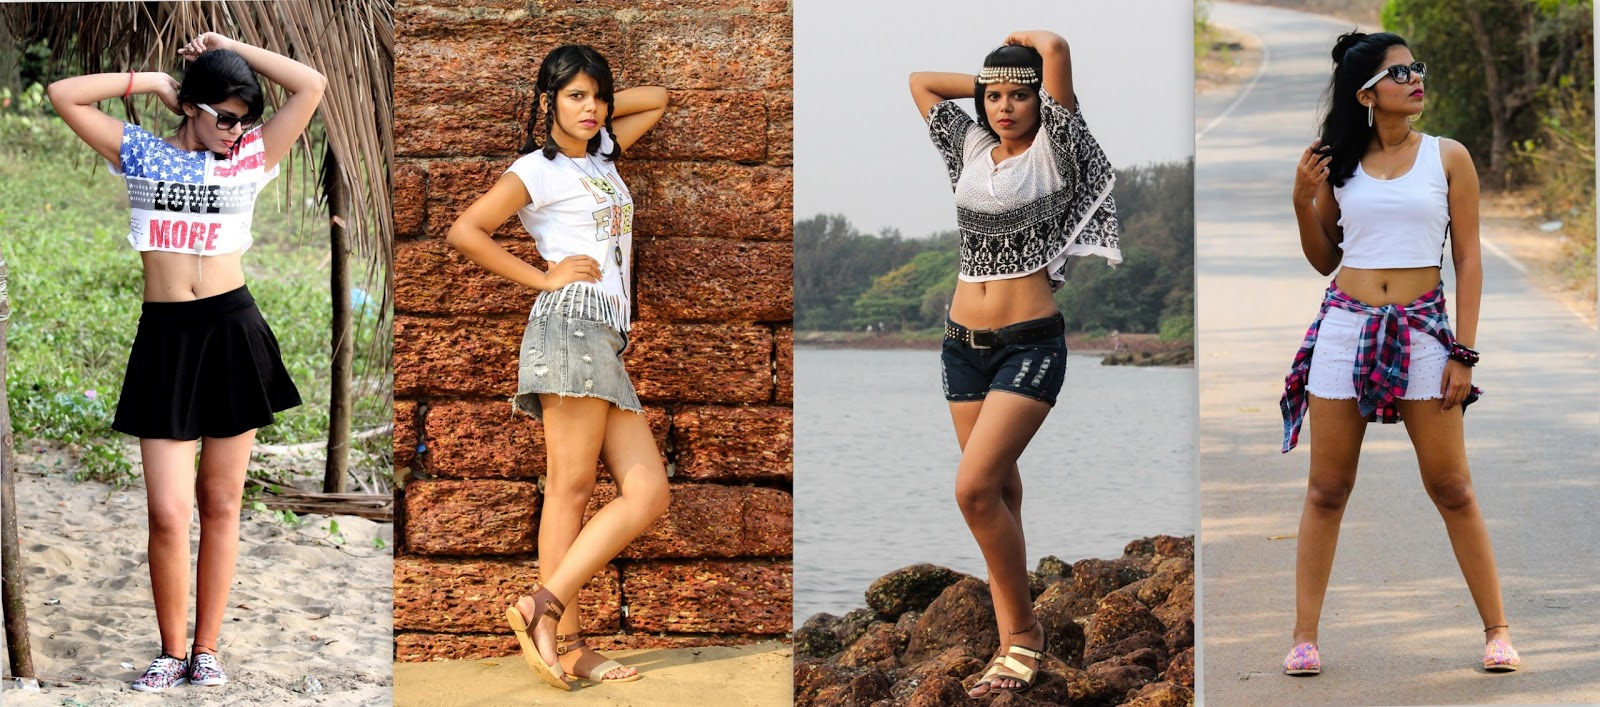 Whatu0026#39;s Up Flexcia Dressing up for the perfect summer days in Goa || Summer Lookbook by Flexcia